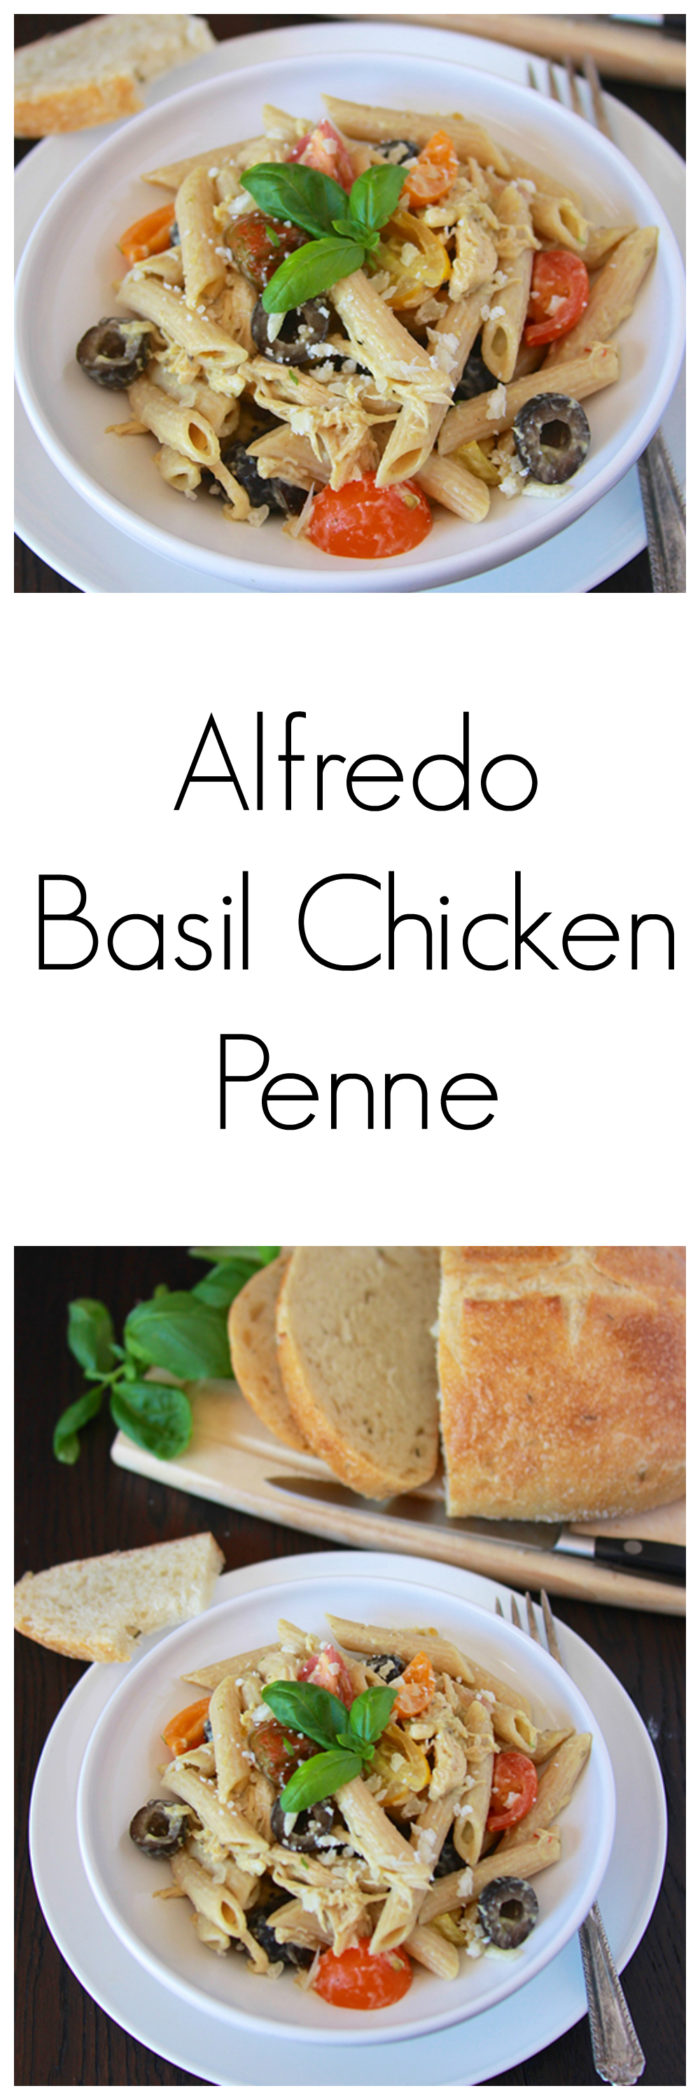 Alfredo Basil Chicken Penne is quick and easy to make;  a savory one-pot-wonder the whole family will love!! www.cookingwithruthie.com